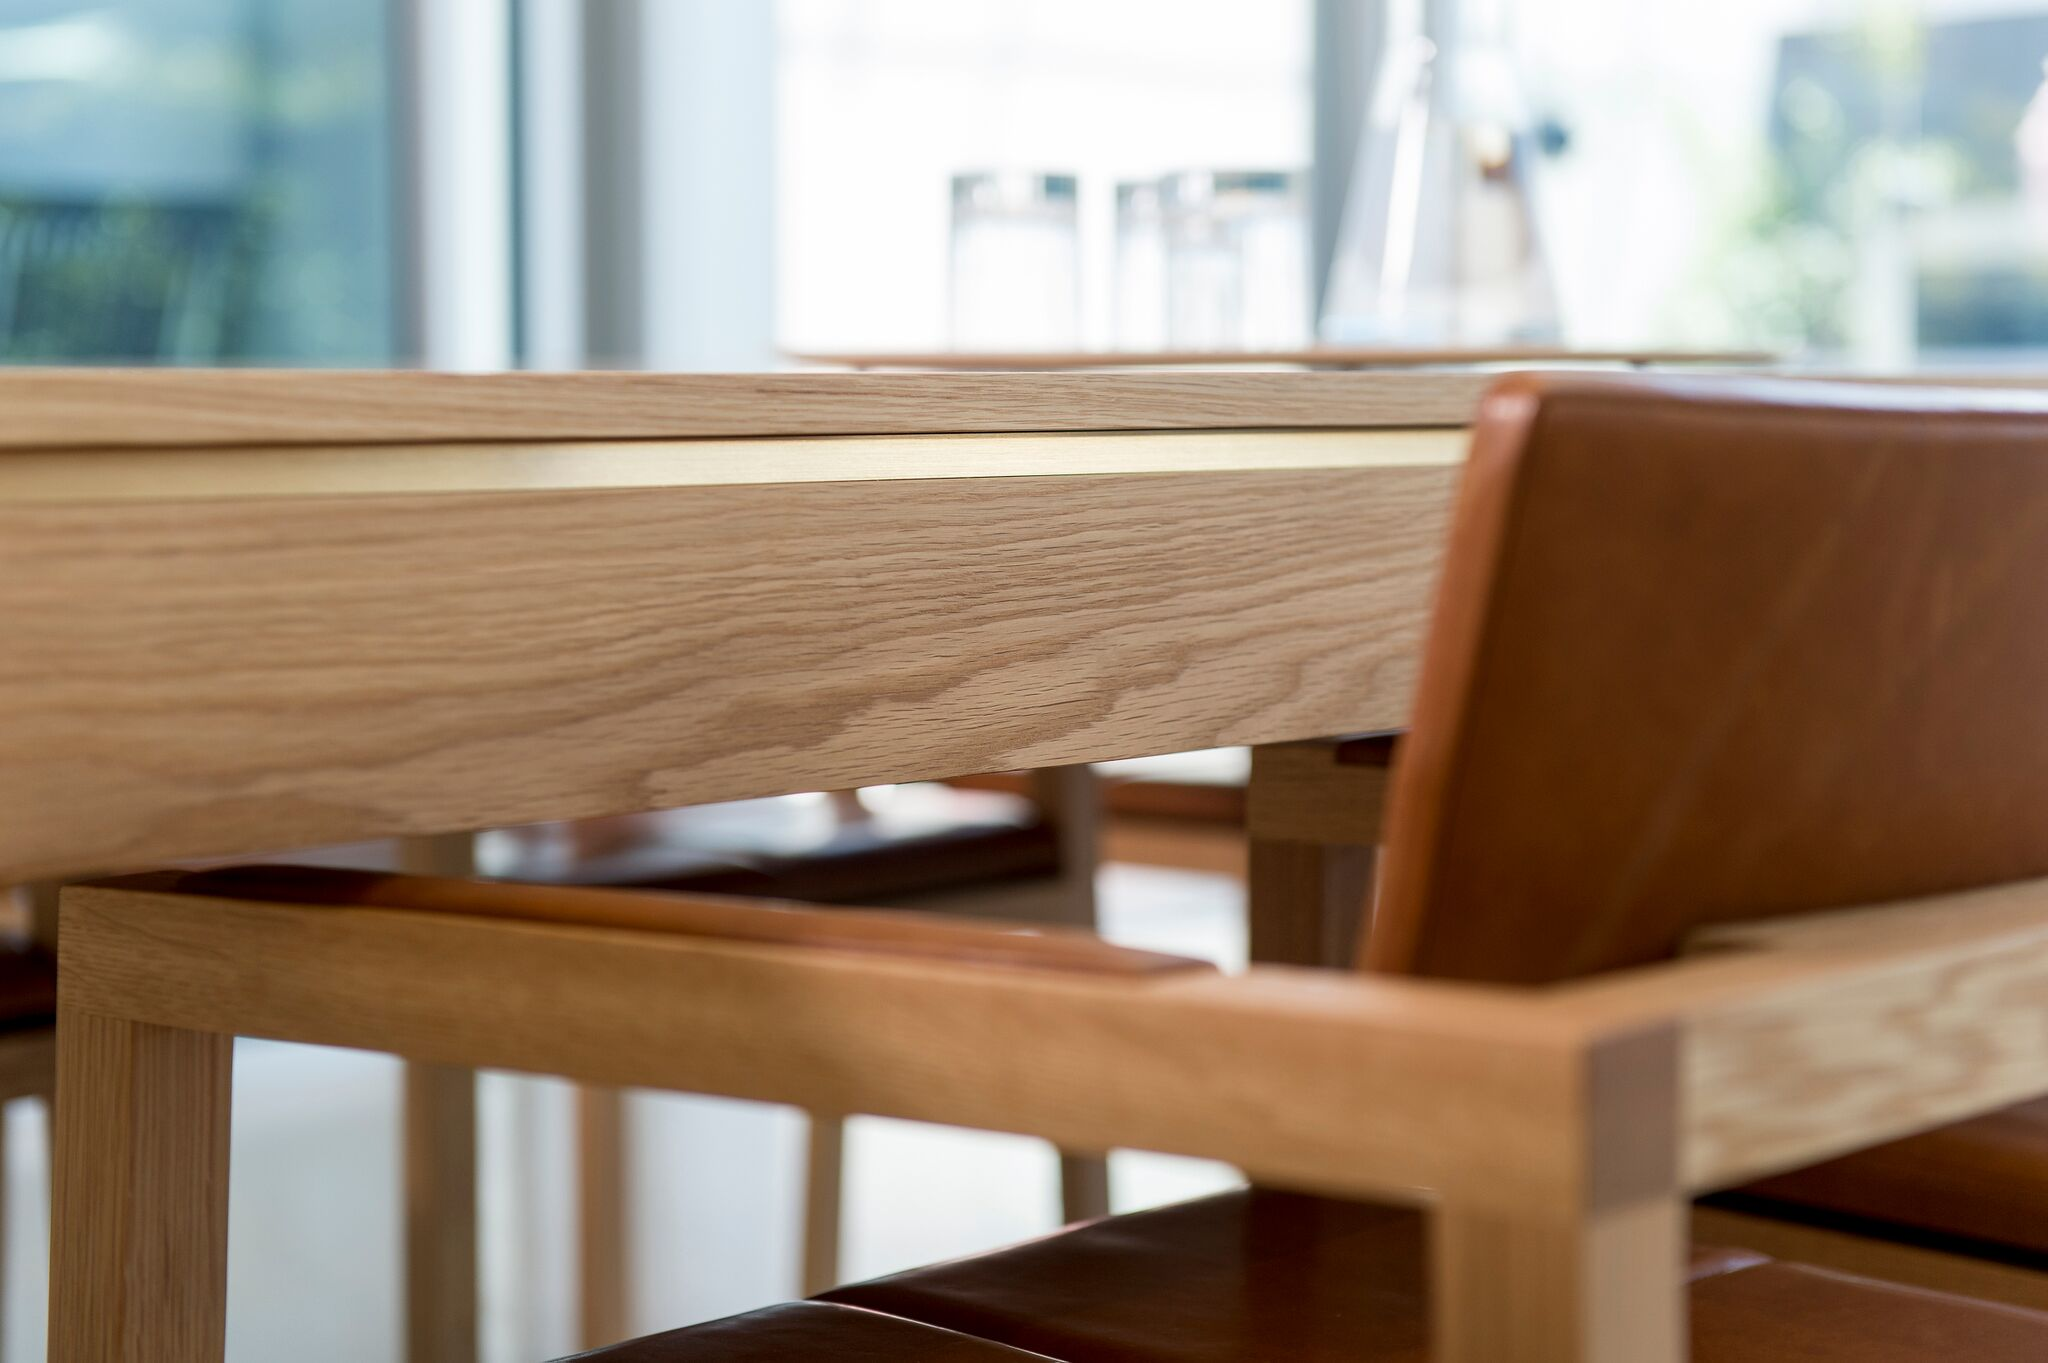 Gallery Of The Mila Table By Fraco Crea Local Australian Furniture Design Melbourne, Vic Image 15